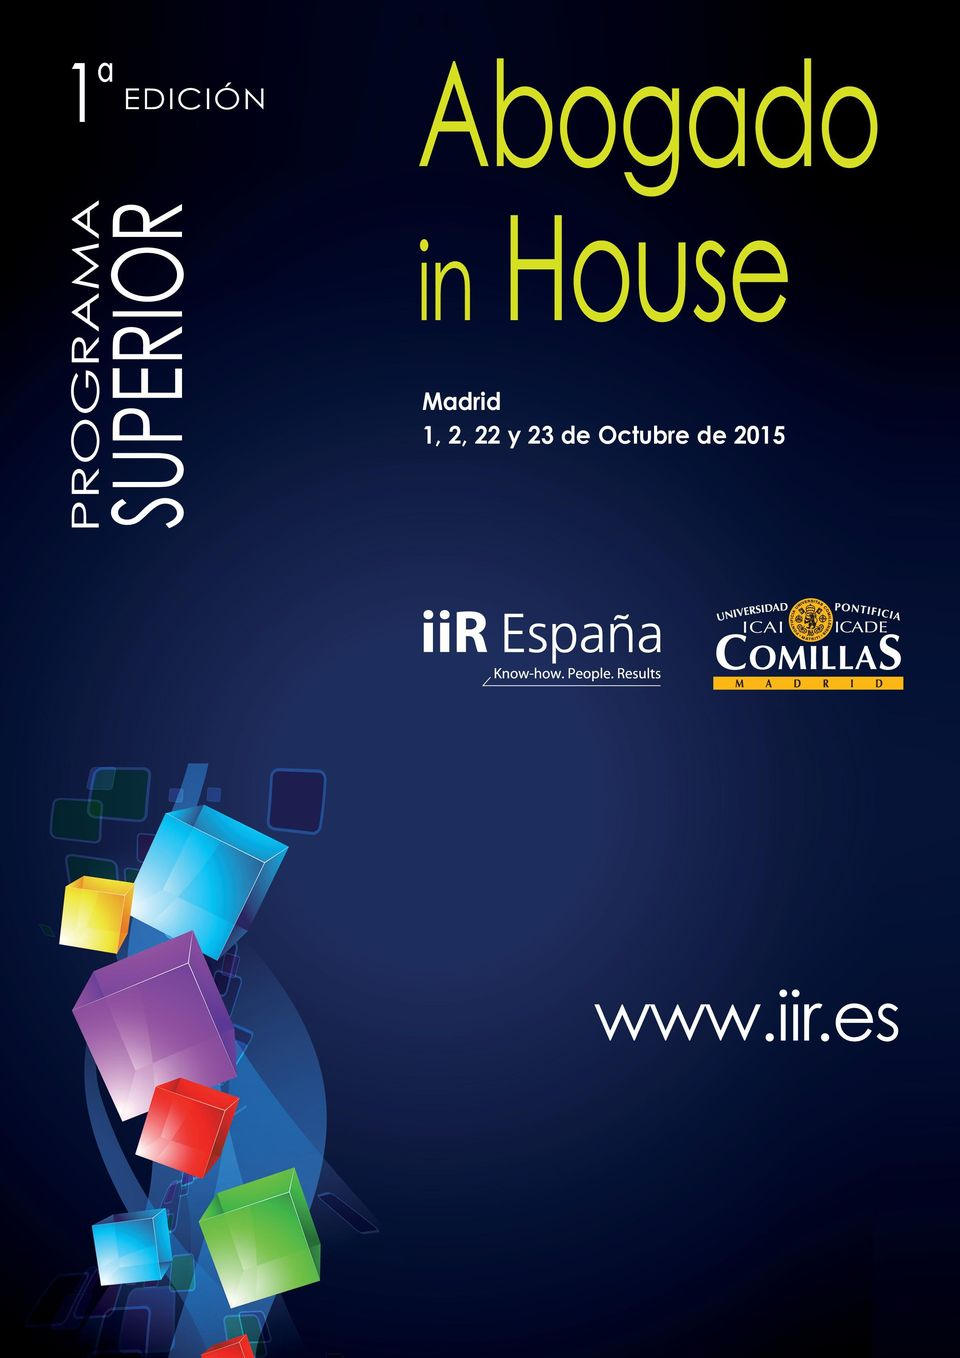 House Madrid 1, 2, 22 y